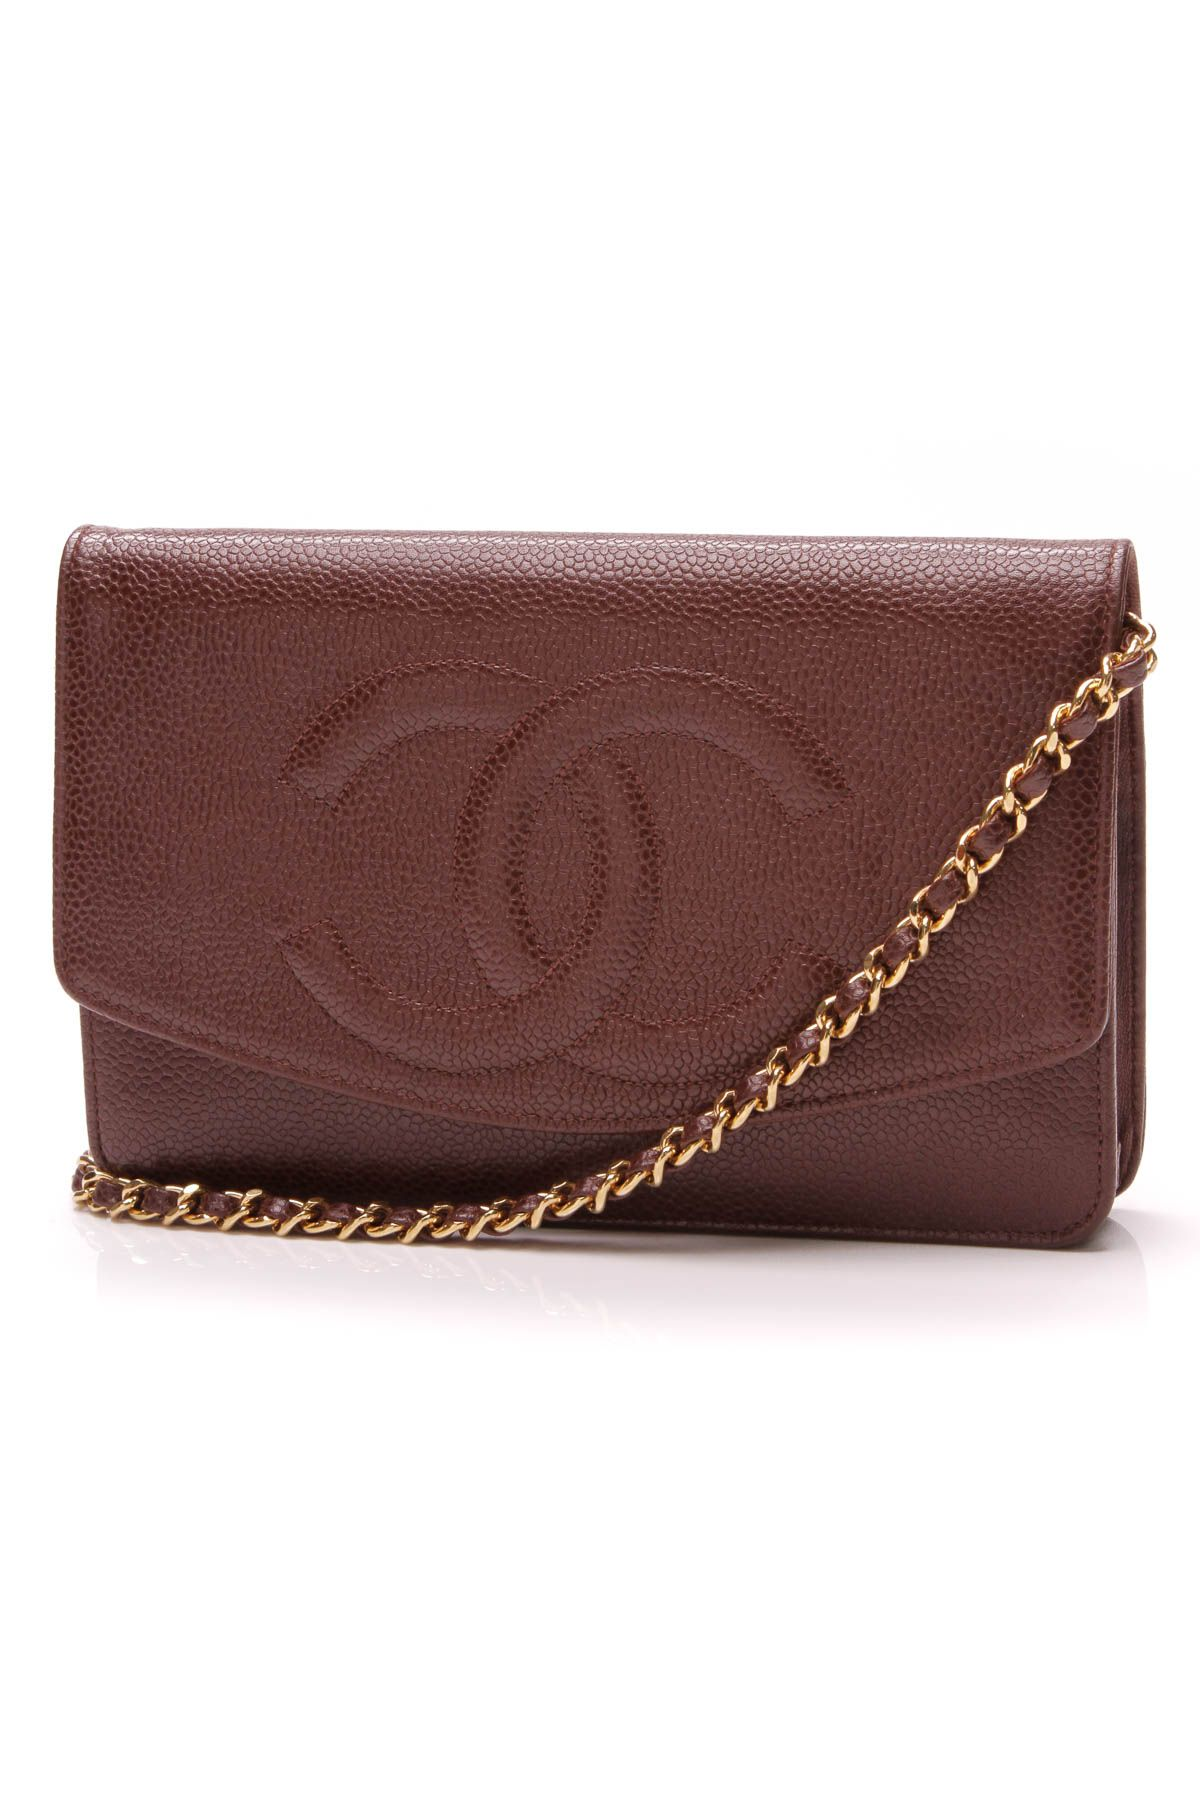 b2dc7a7ac823 Vintage Timeless CC WOC Crossbody Bag - Brown Caviar in 2019 | Crazy ...